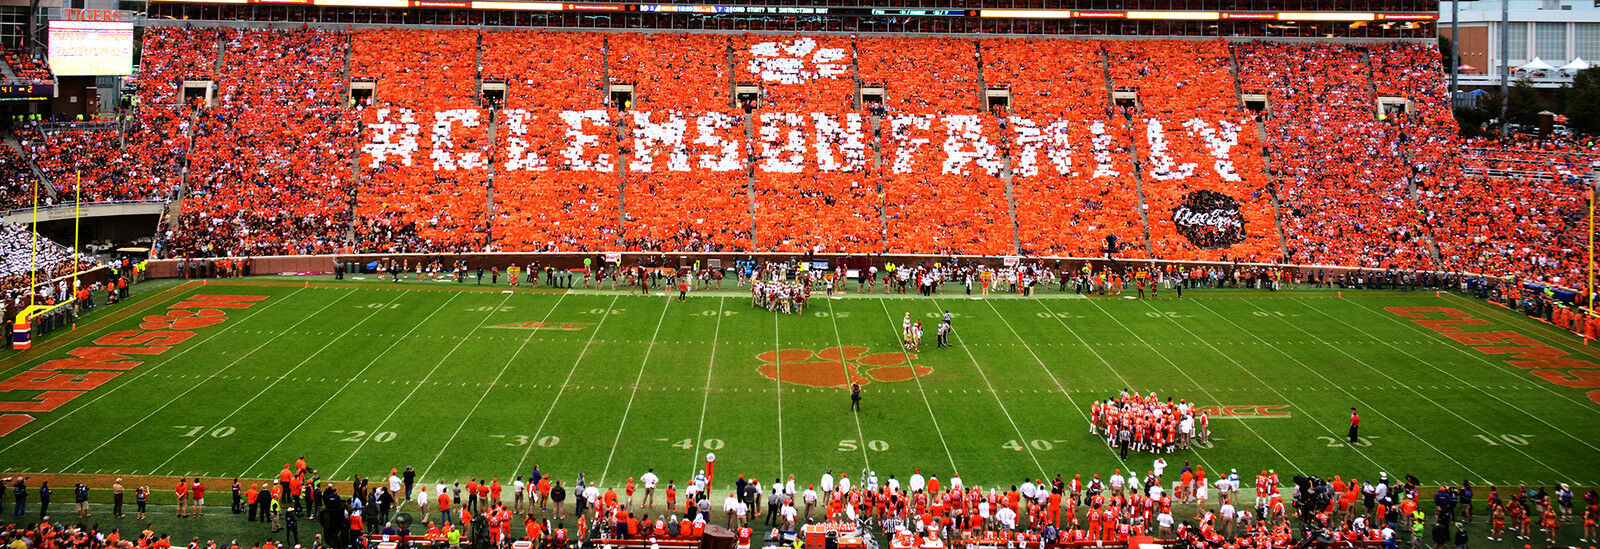 2017 Clemson Tigers Football Season Tickets - Season Package (Includes Tickets for all Home Games)